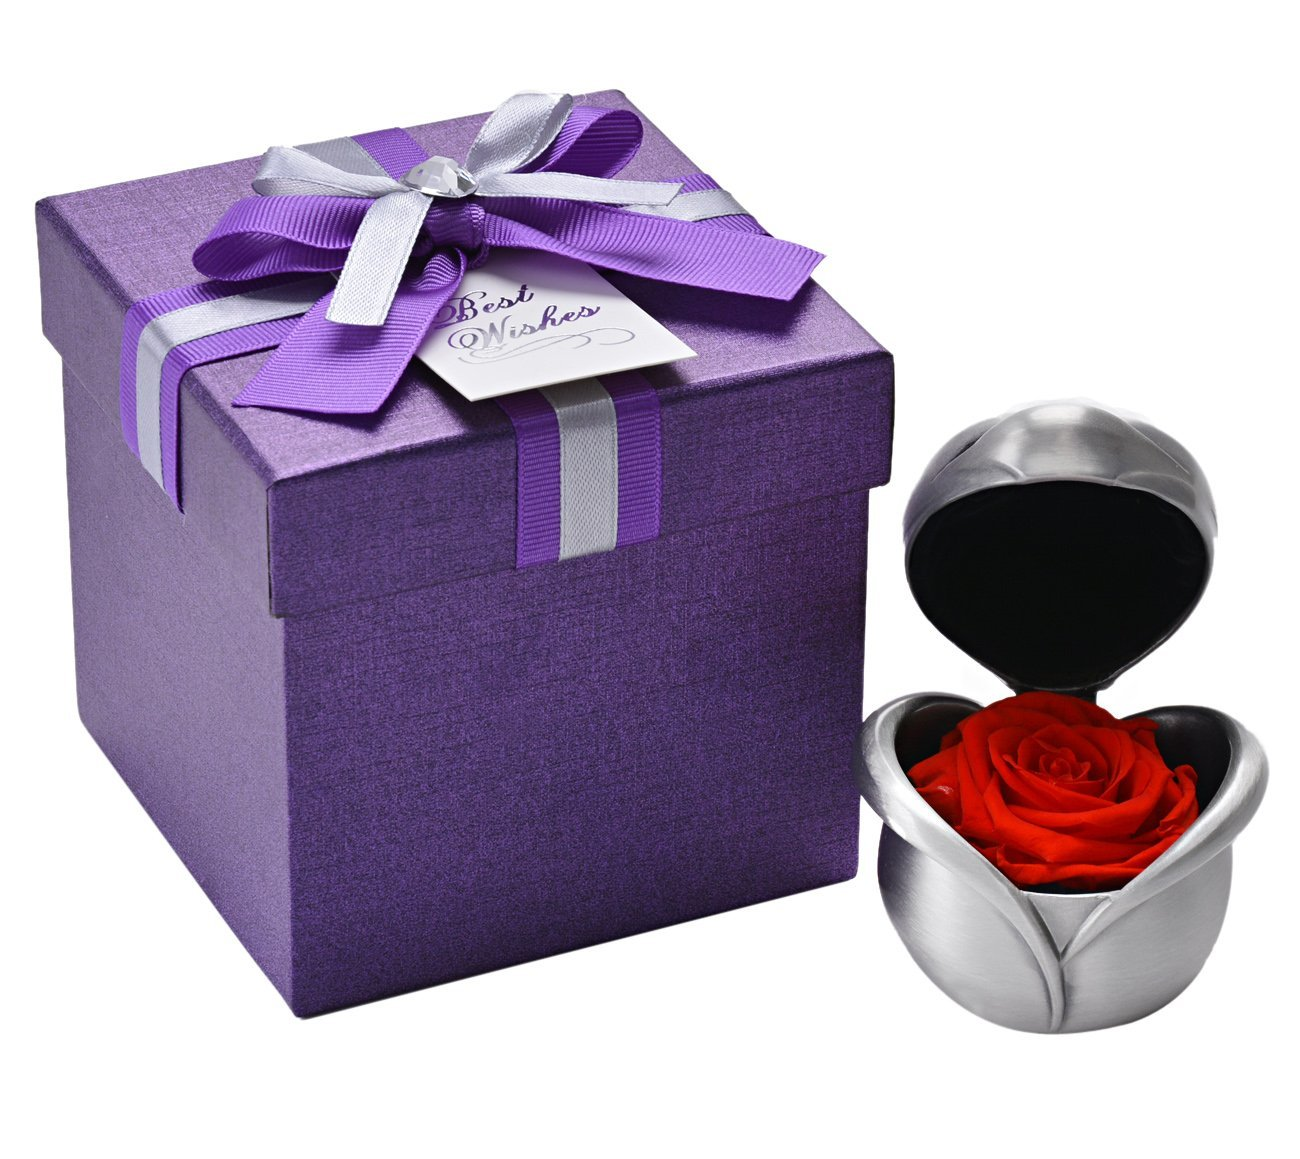 Rose day -Gifts -V15